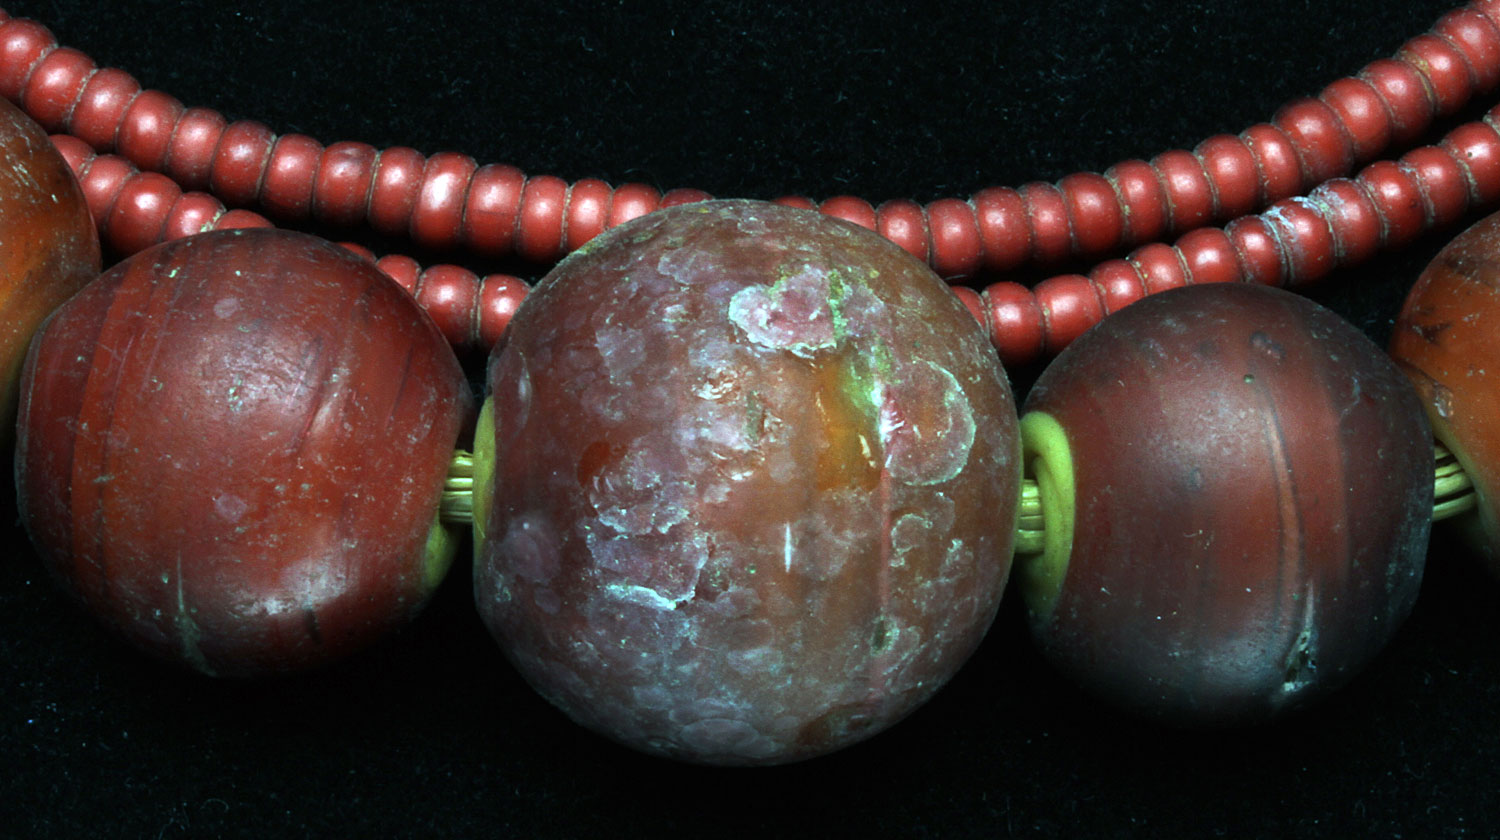 Large and small Cornaline d' Aleppo glass beads; the center large bead has been damaged, showing as circular spall marks. These Venetian beads are from the African trade. Note yellow core of larger CdAs. Sizes range from 0.4 to 2.3 cm diameters. RKL